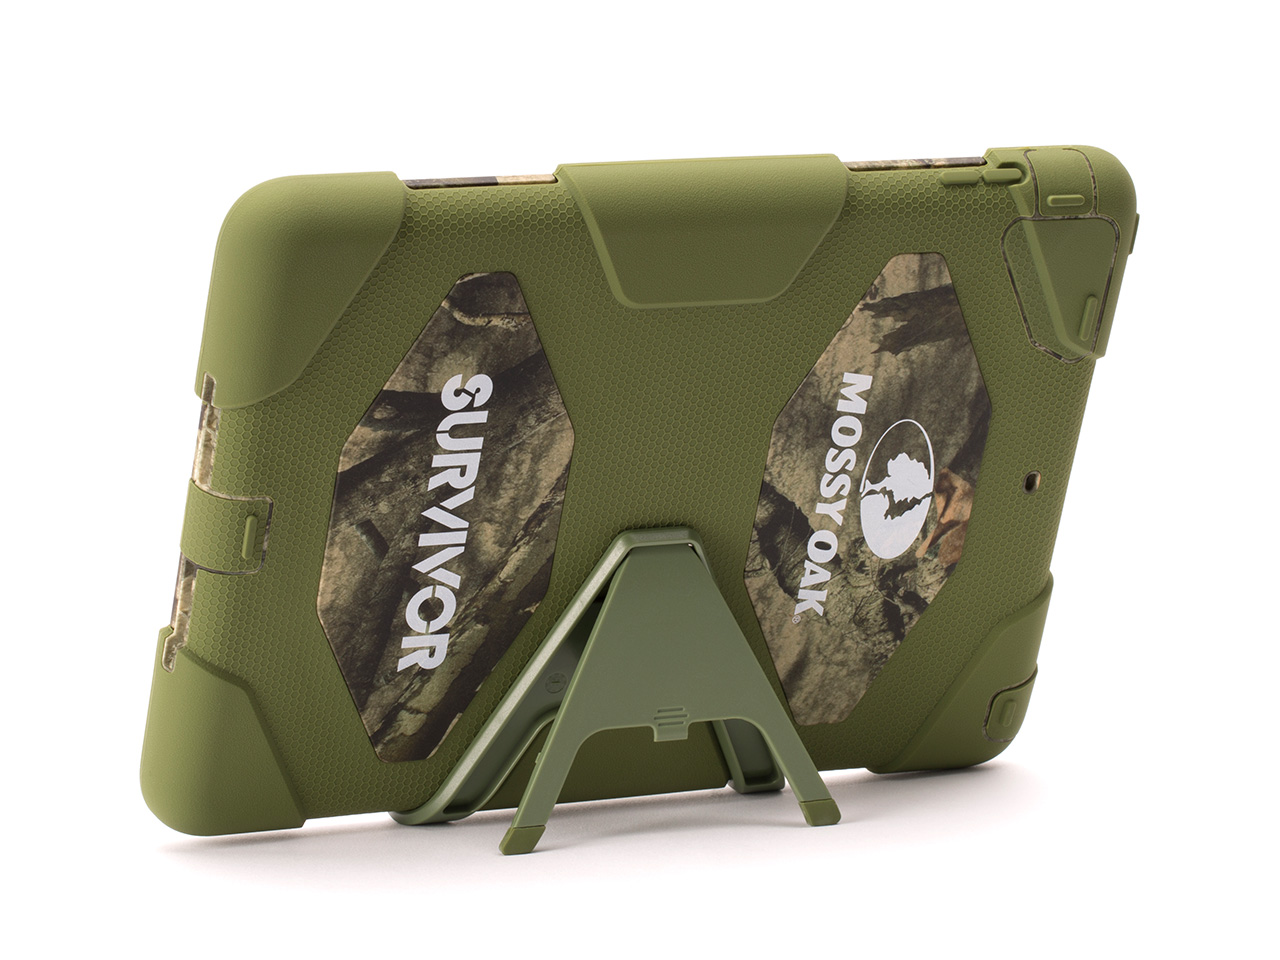 Treestand/Green Survivor All-Terrain in Mossy Oak Camo + Stand for iPad Air